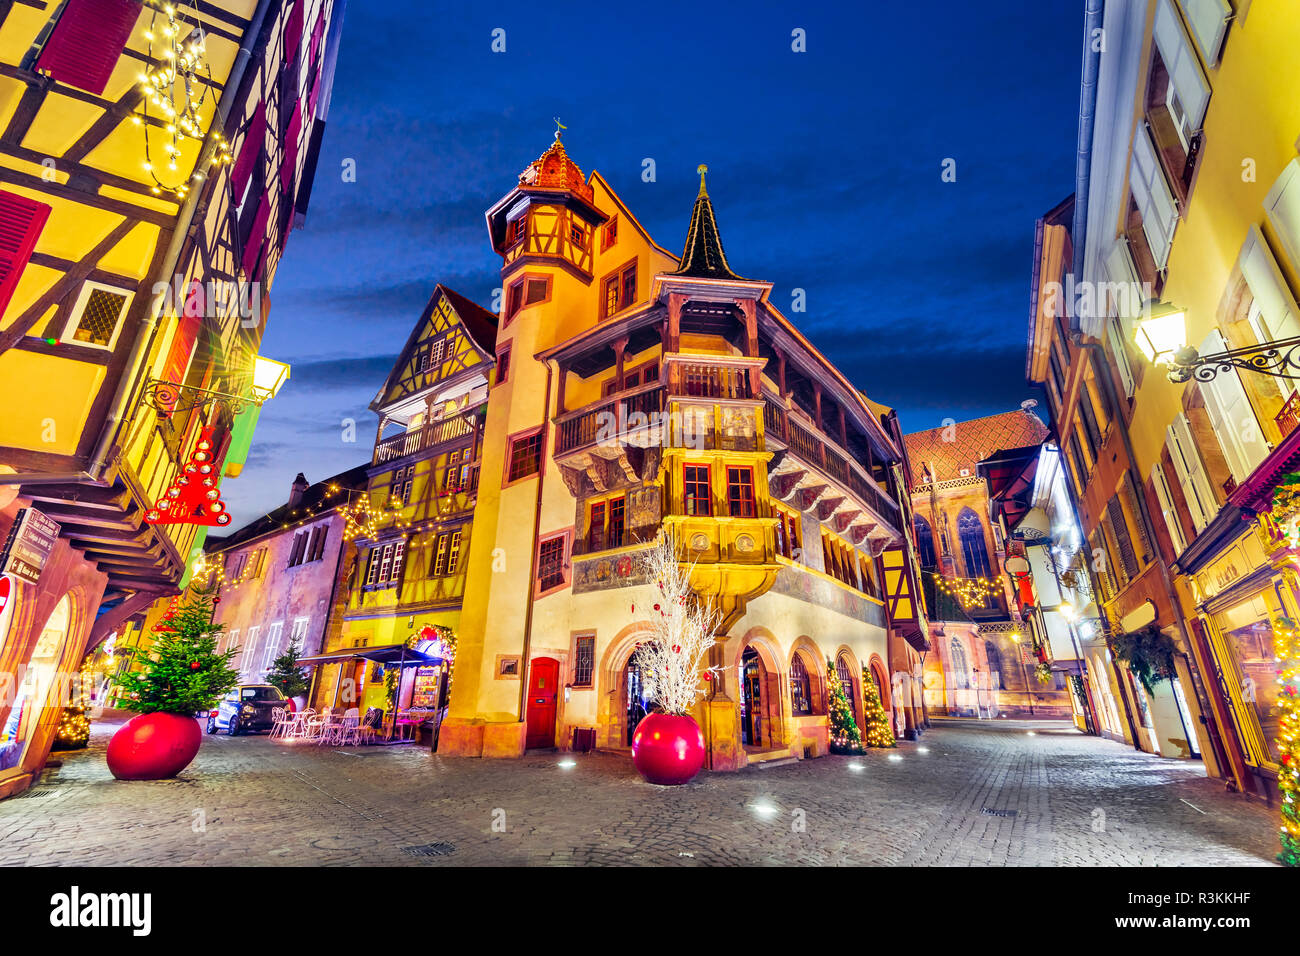 Colmar, France. Traditional Alsatian half-timbered houses Christmas decorated city in Alsace. - Stock Image